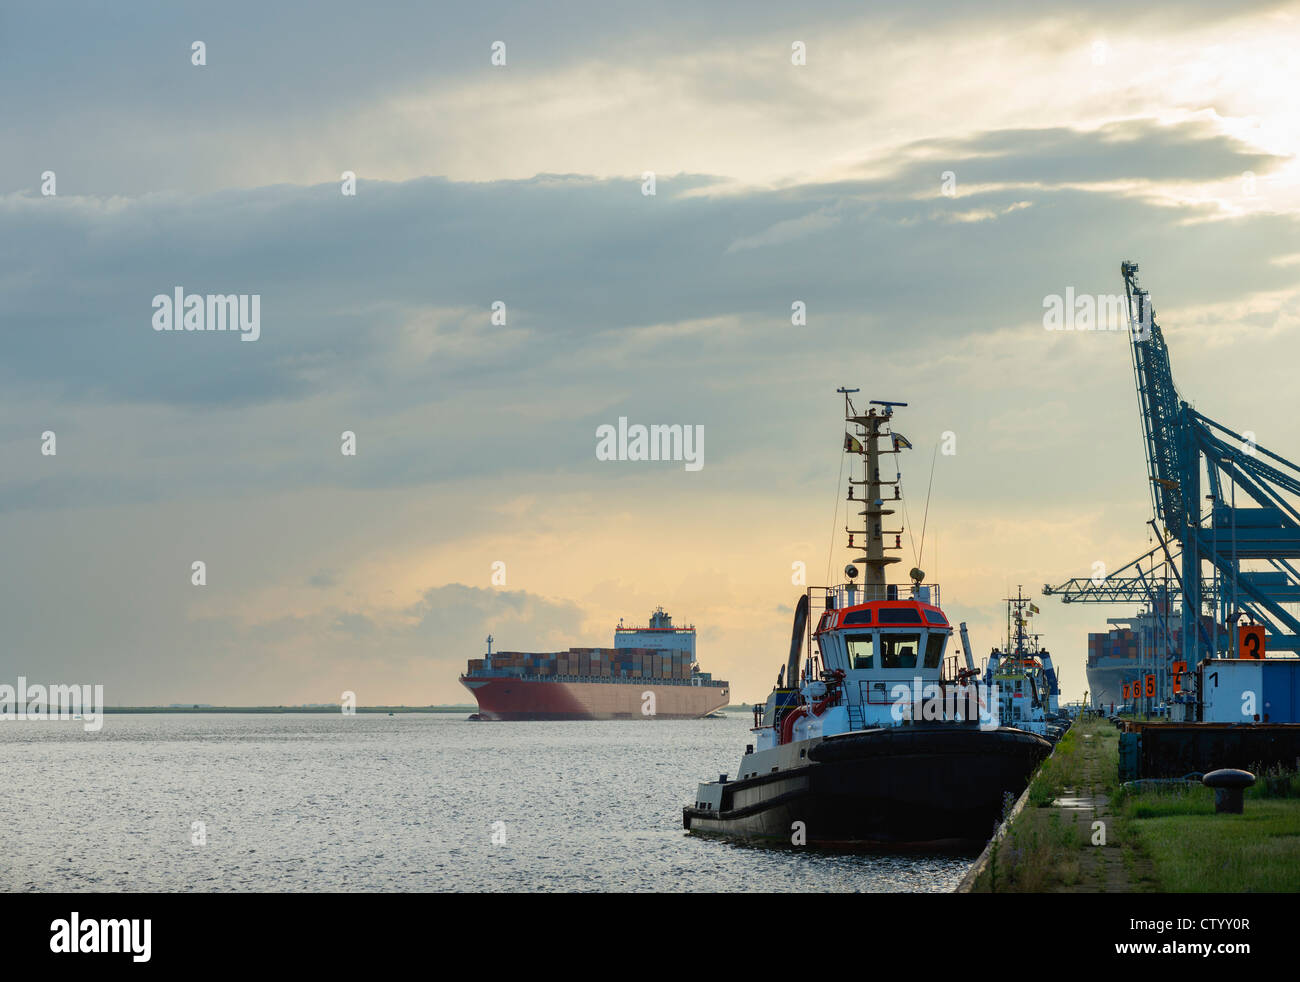 Ships docked in urban bay - Stock Image